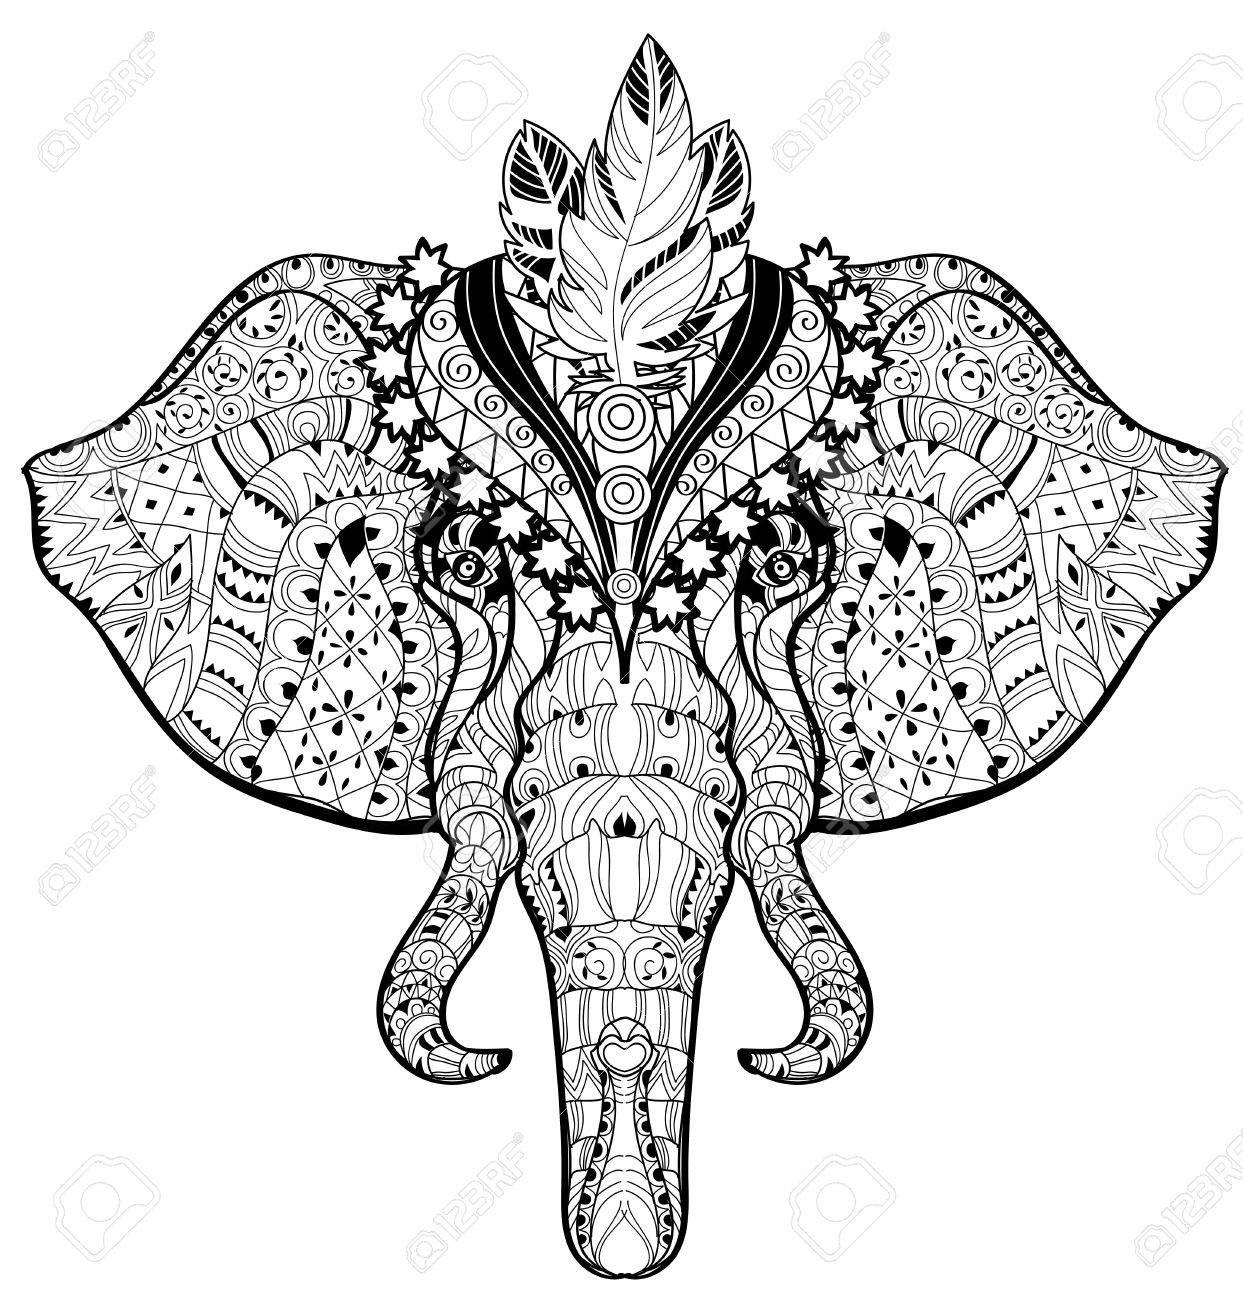 Circus Elephant Head Doodle On White BackgroundGraphic Illustration Vector Ready For Coloring Book